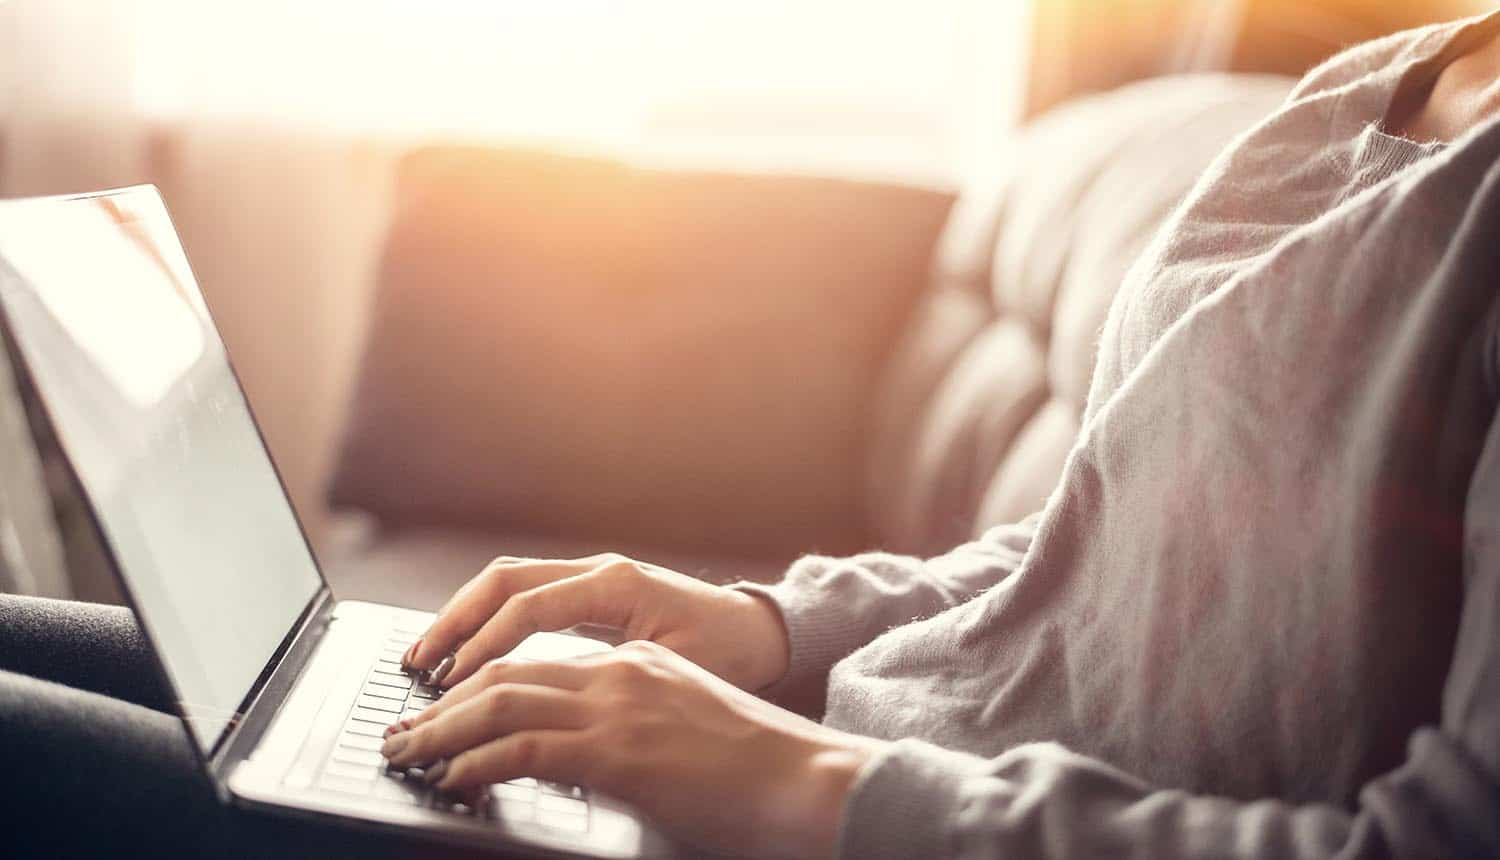 Woman working on laptop at home showing need for cybersecurity awareness